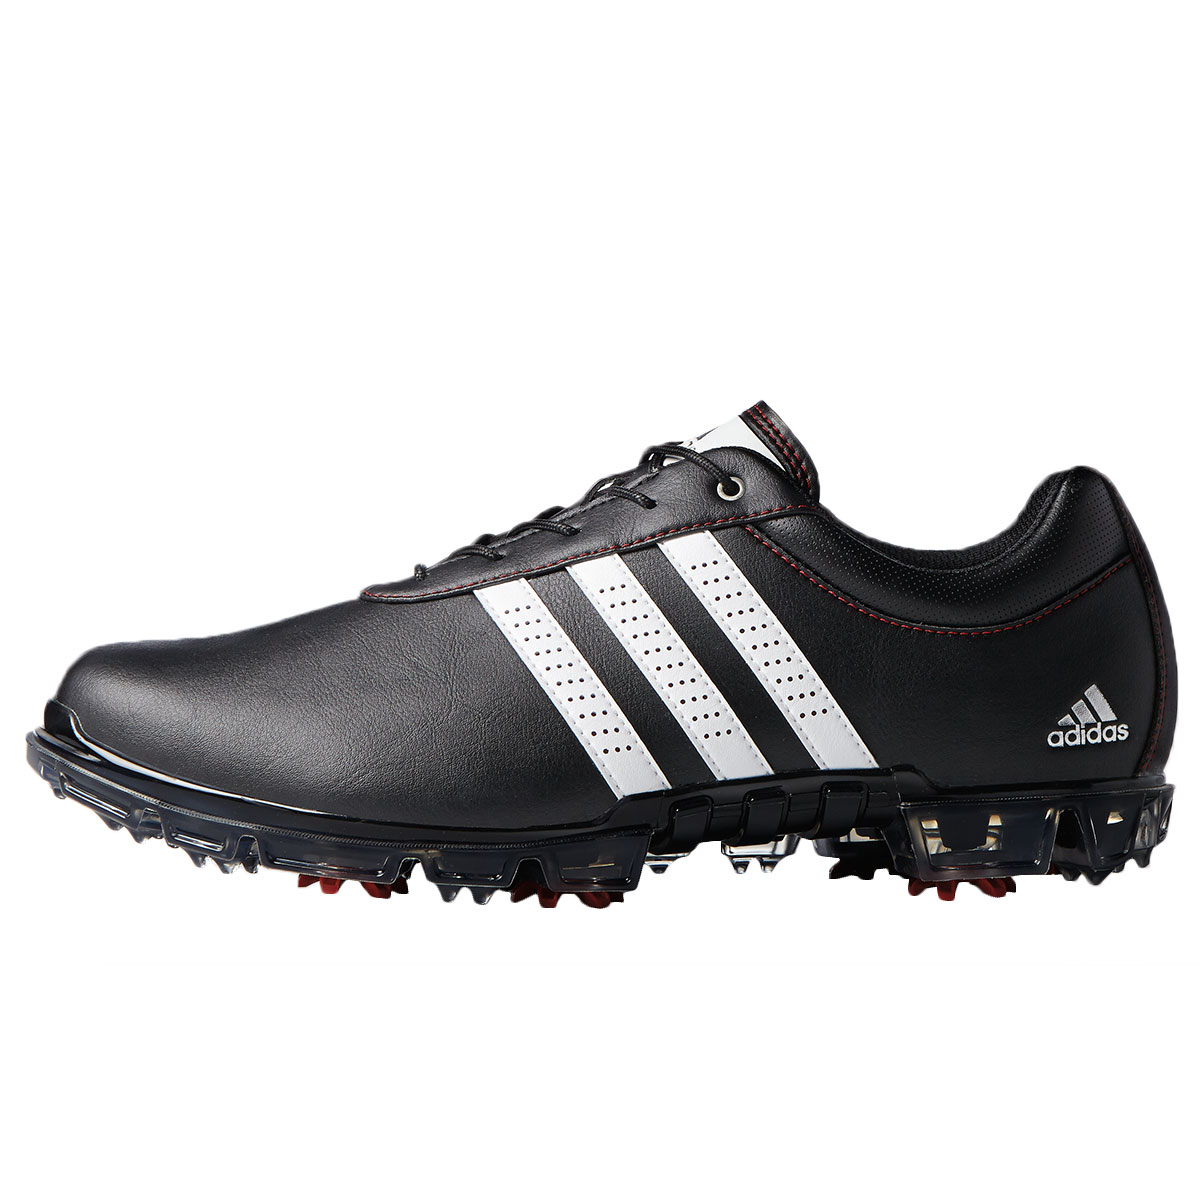 adidas shoes lightweight